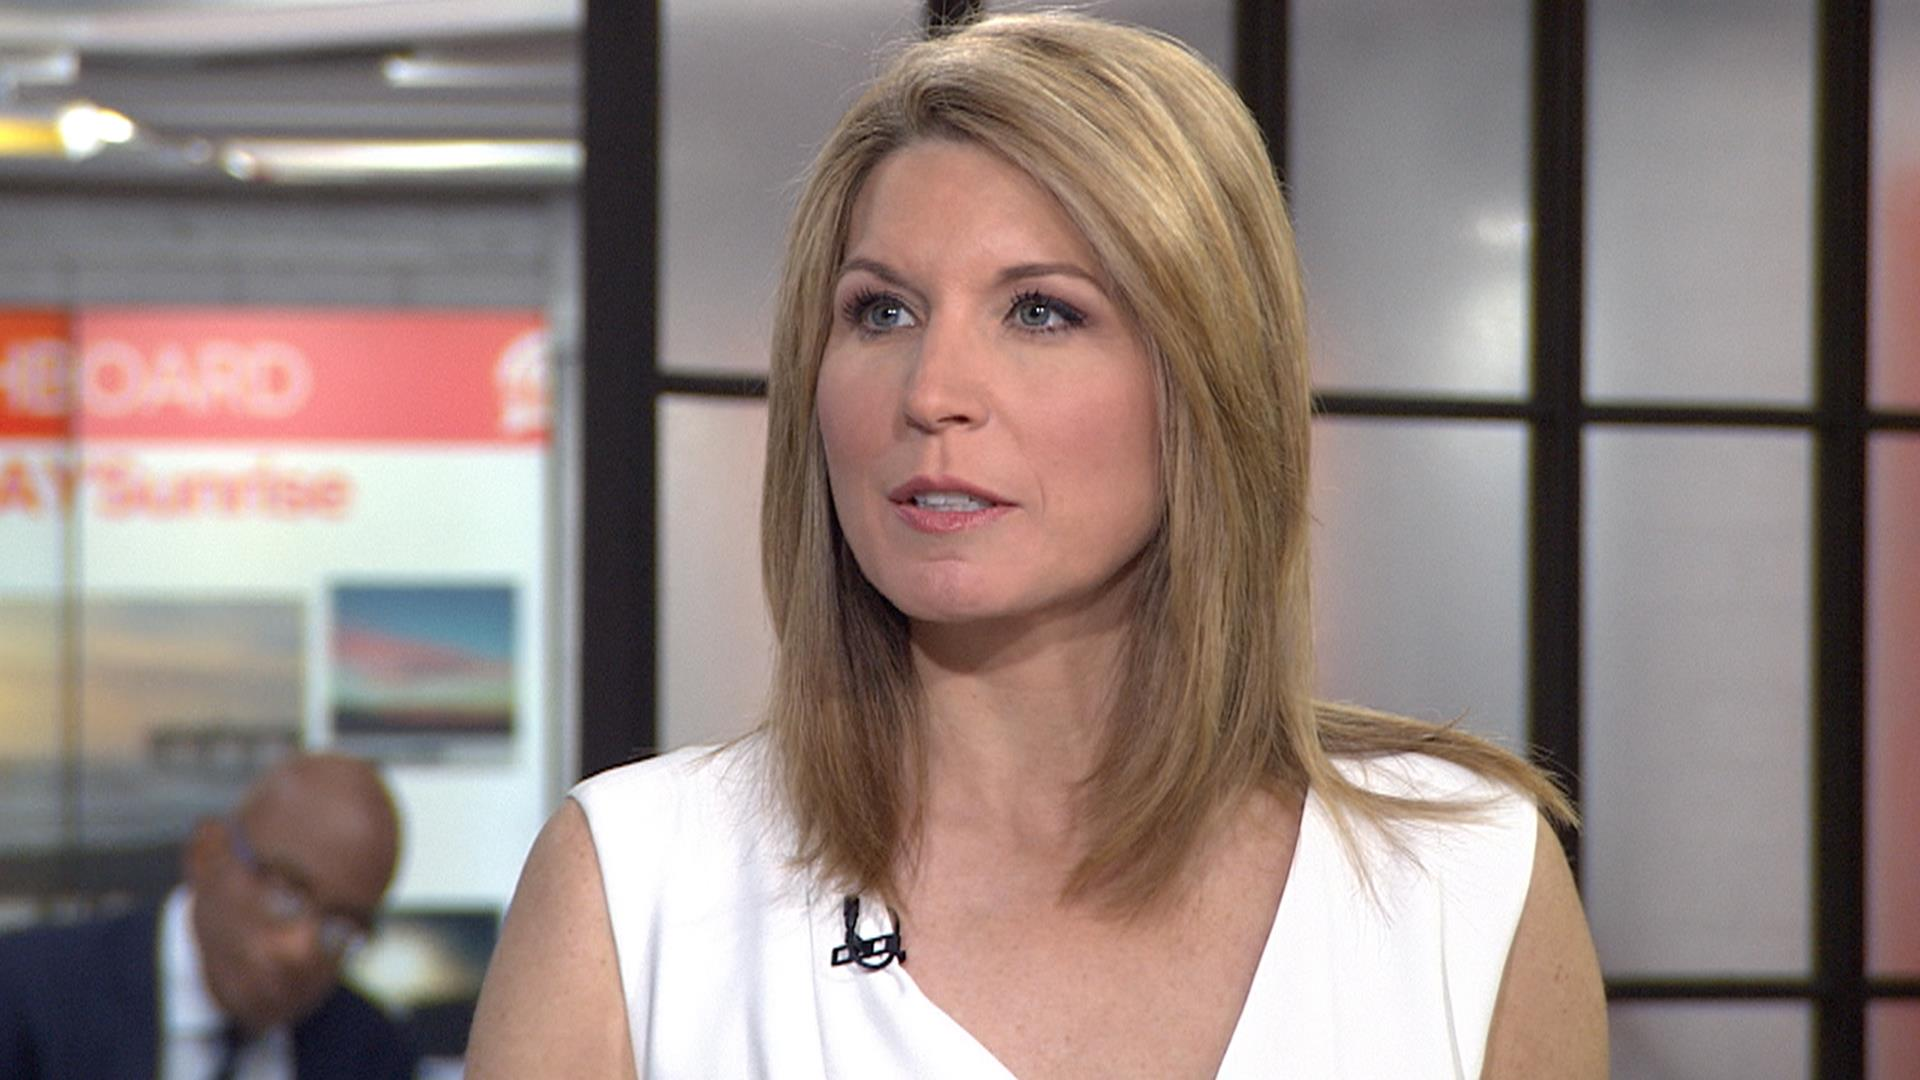 Analyst Nicolle Wallace: Obama's got Hillary's back on email issue ...